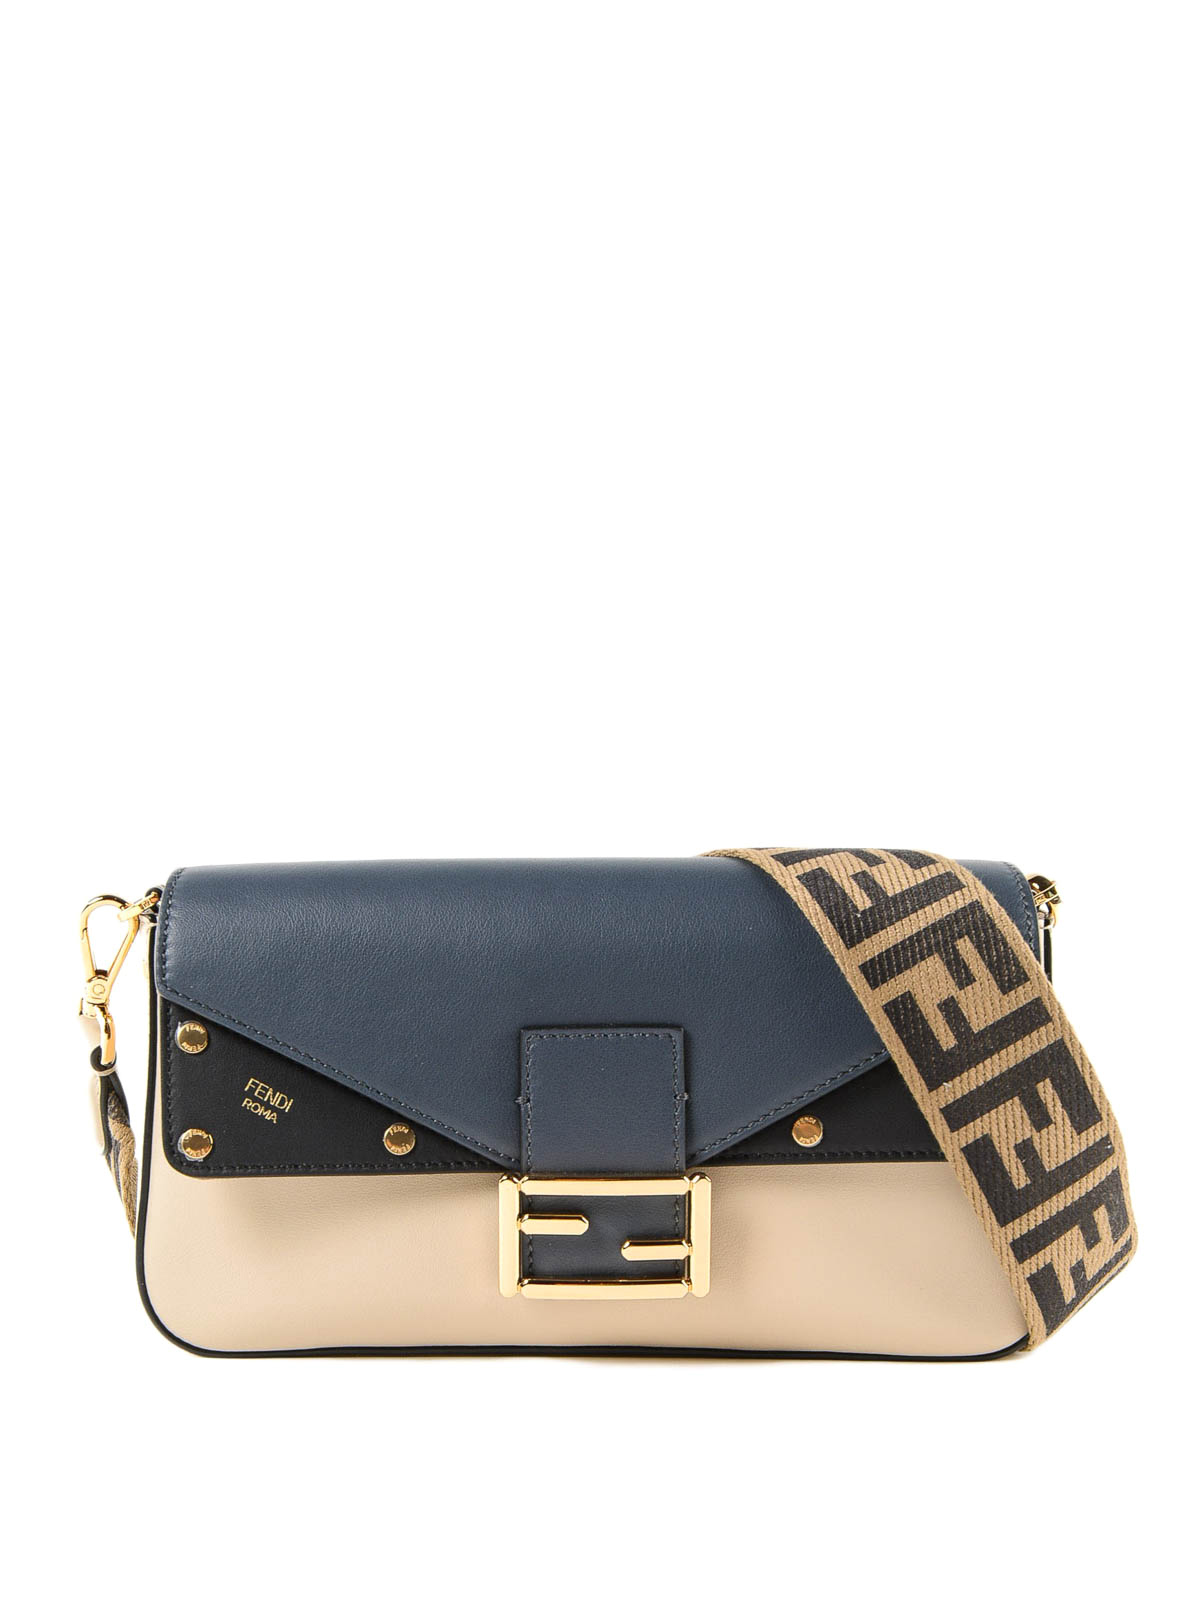 8a5abc318fdb Fendi - Baguette logomania strap multicolour bag - cross body bags ...